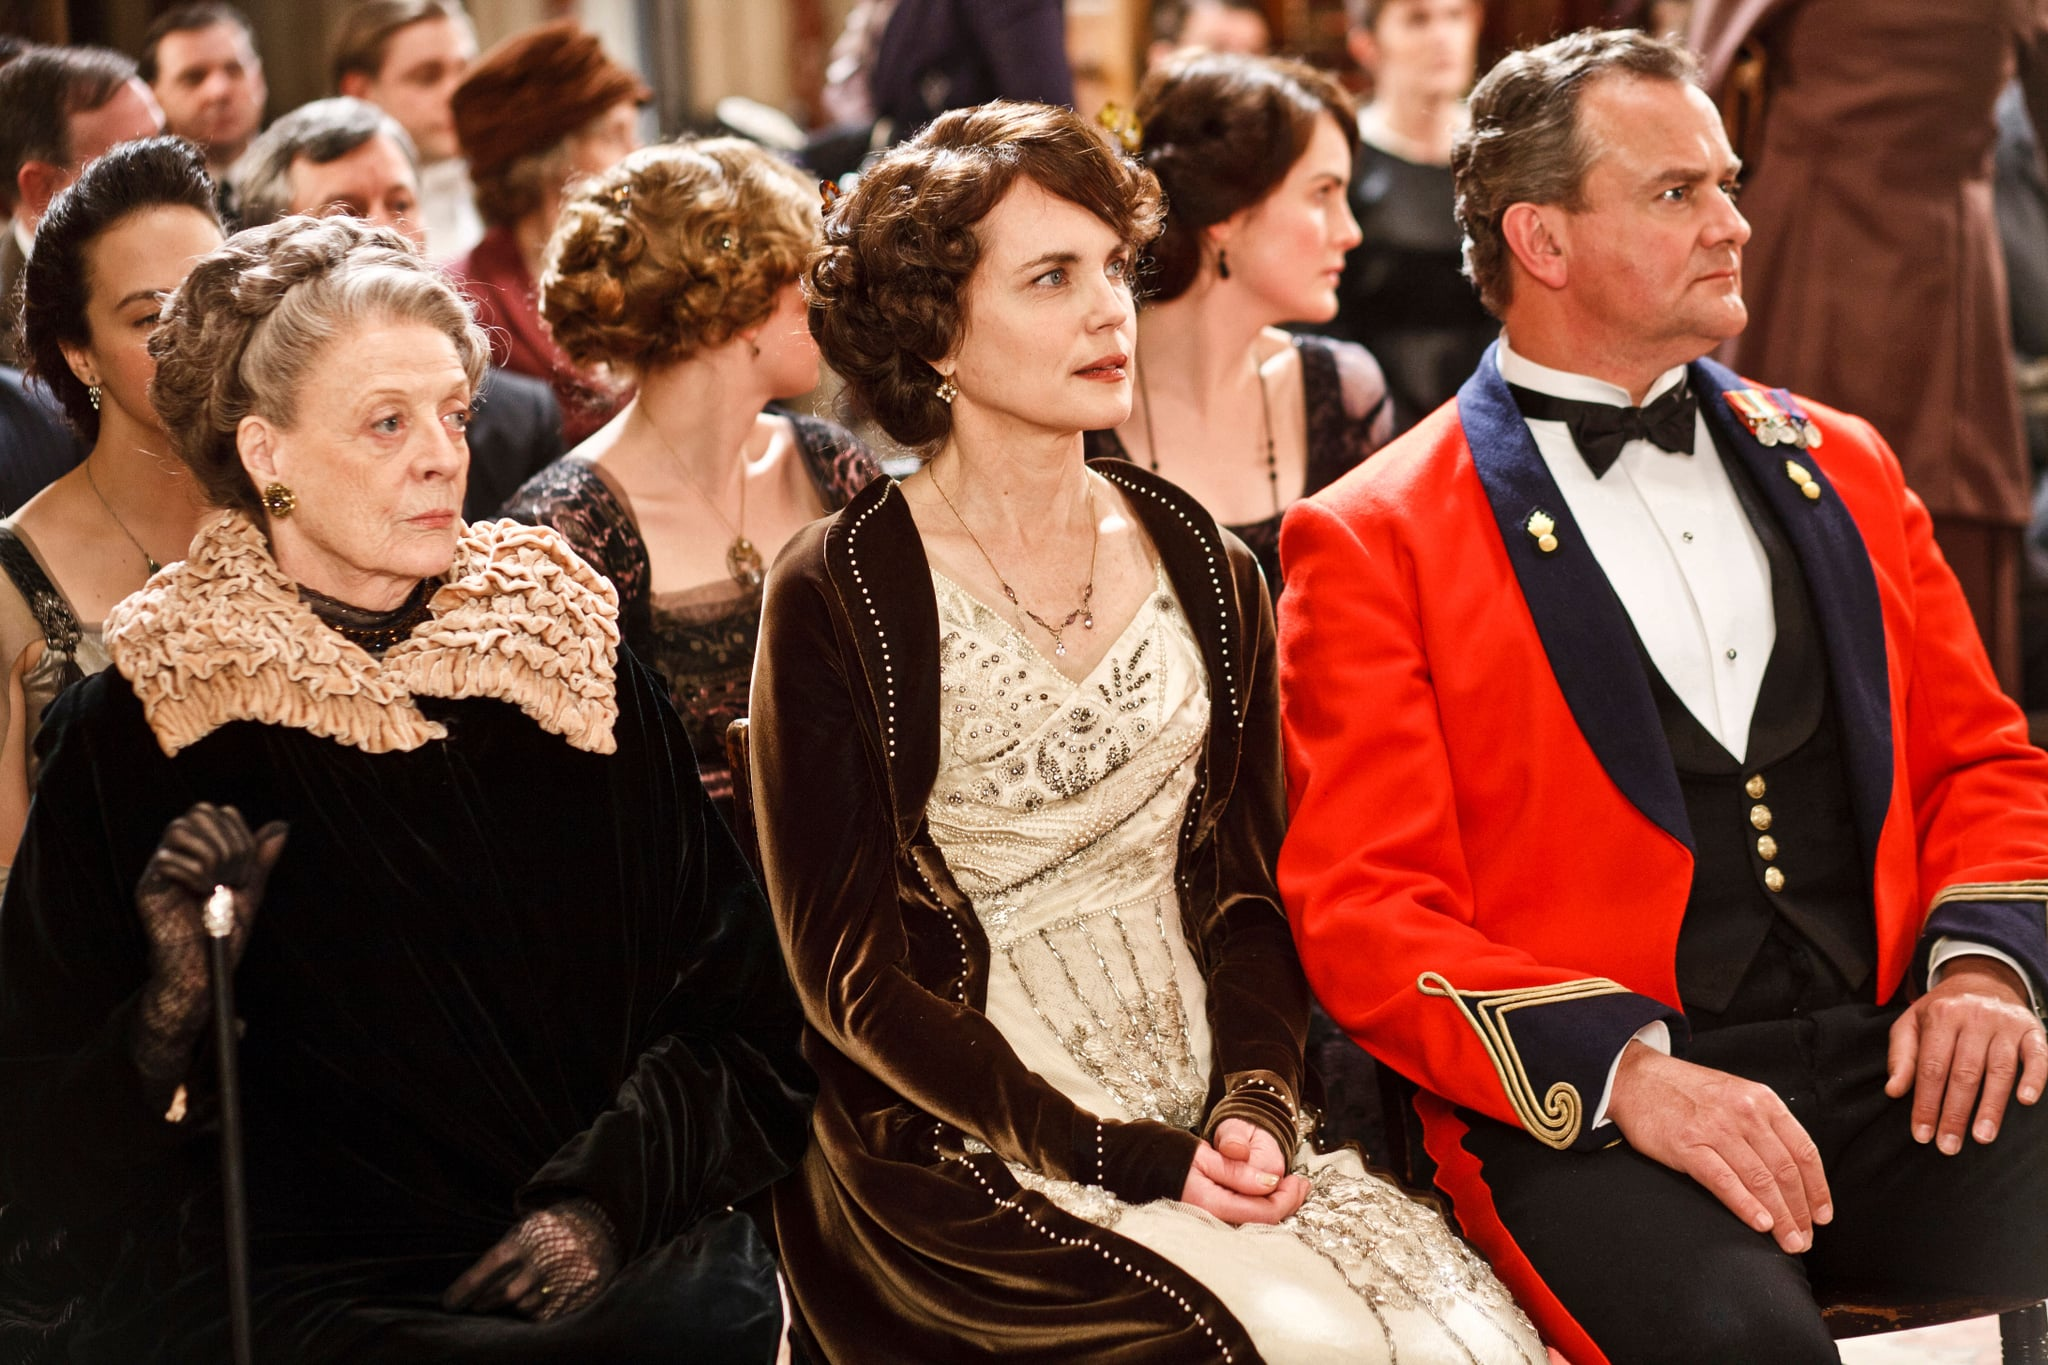 DOWNTON ABBEY, from left: Maggie Smith, Elizabeth McGovern, Hugh Bonneville, (Season 2, ep. 201, aired in the UK on Sept. 18, 2011/aired in the US on Jan. 8, 2012), 2010-2015. photo: Nick Briggs / Carnival Films for Masterpiece/PBS / Courtesy: Everett Collection